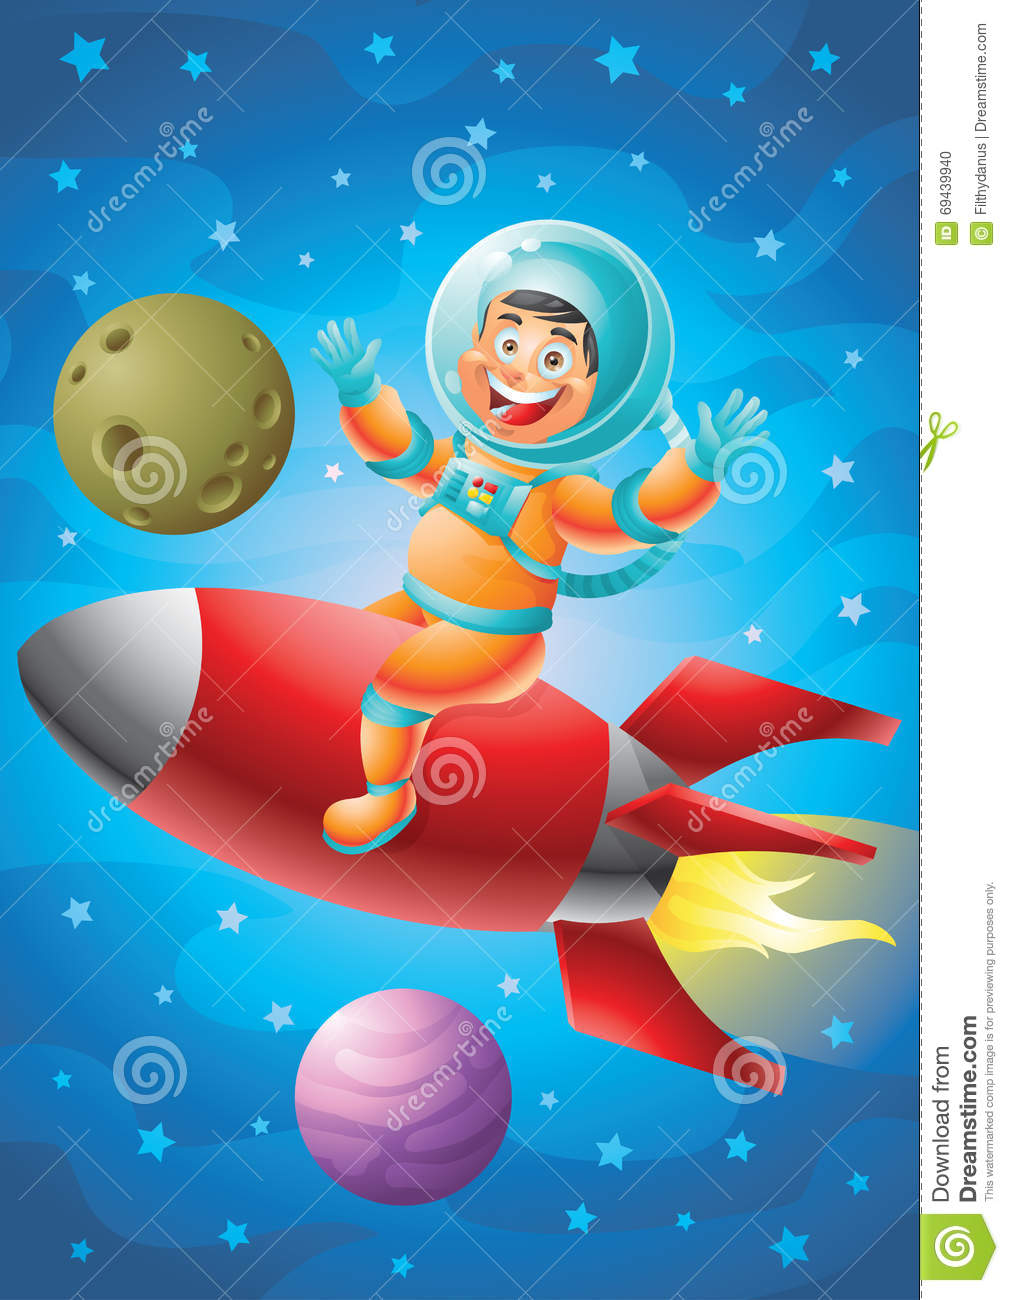 astronaut and spaceship - photo #43